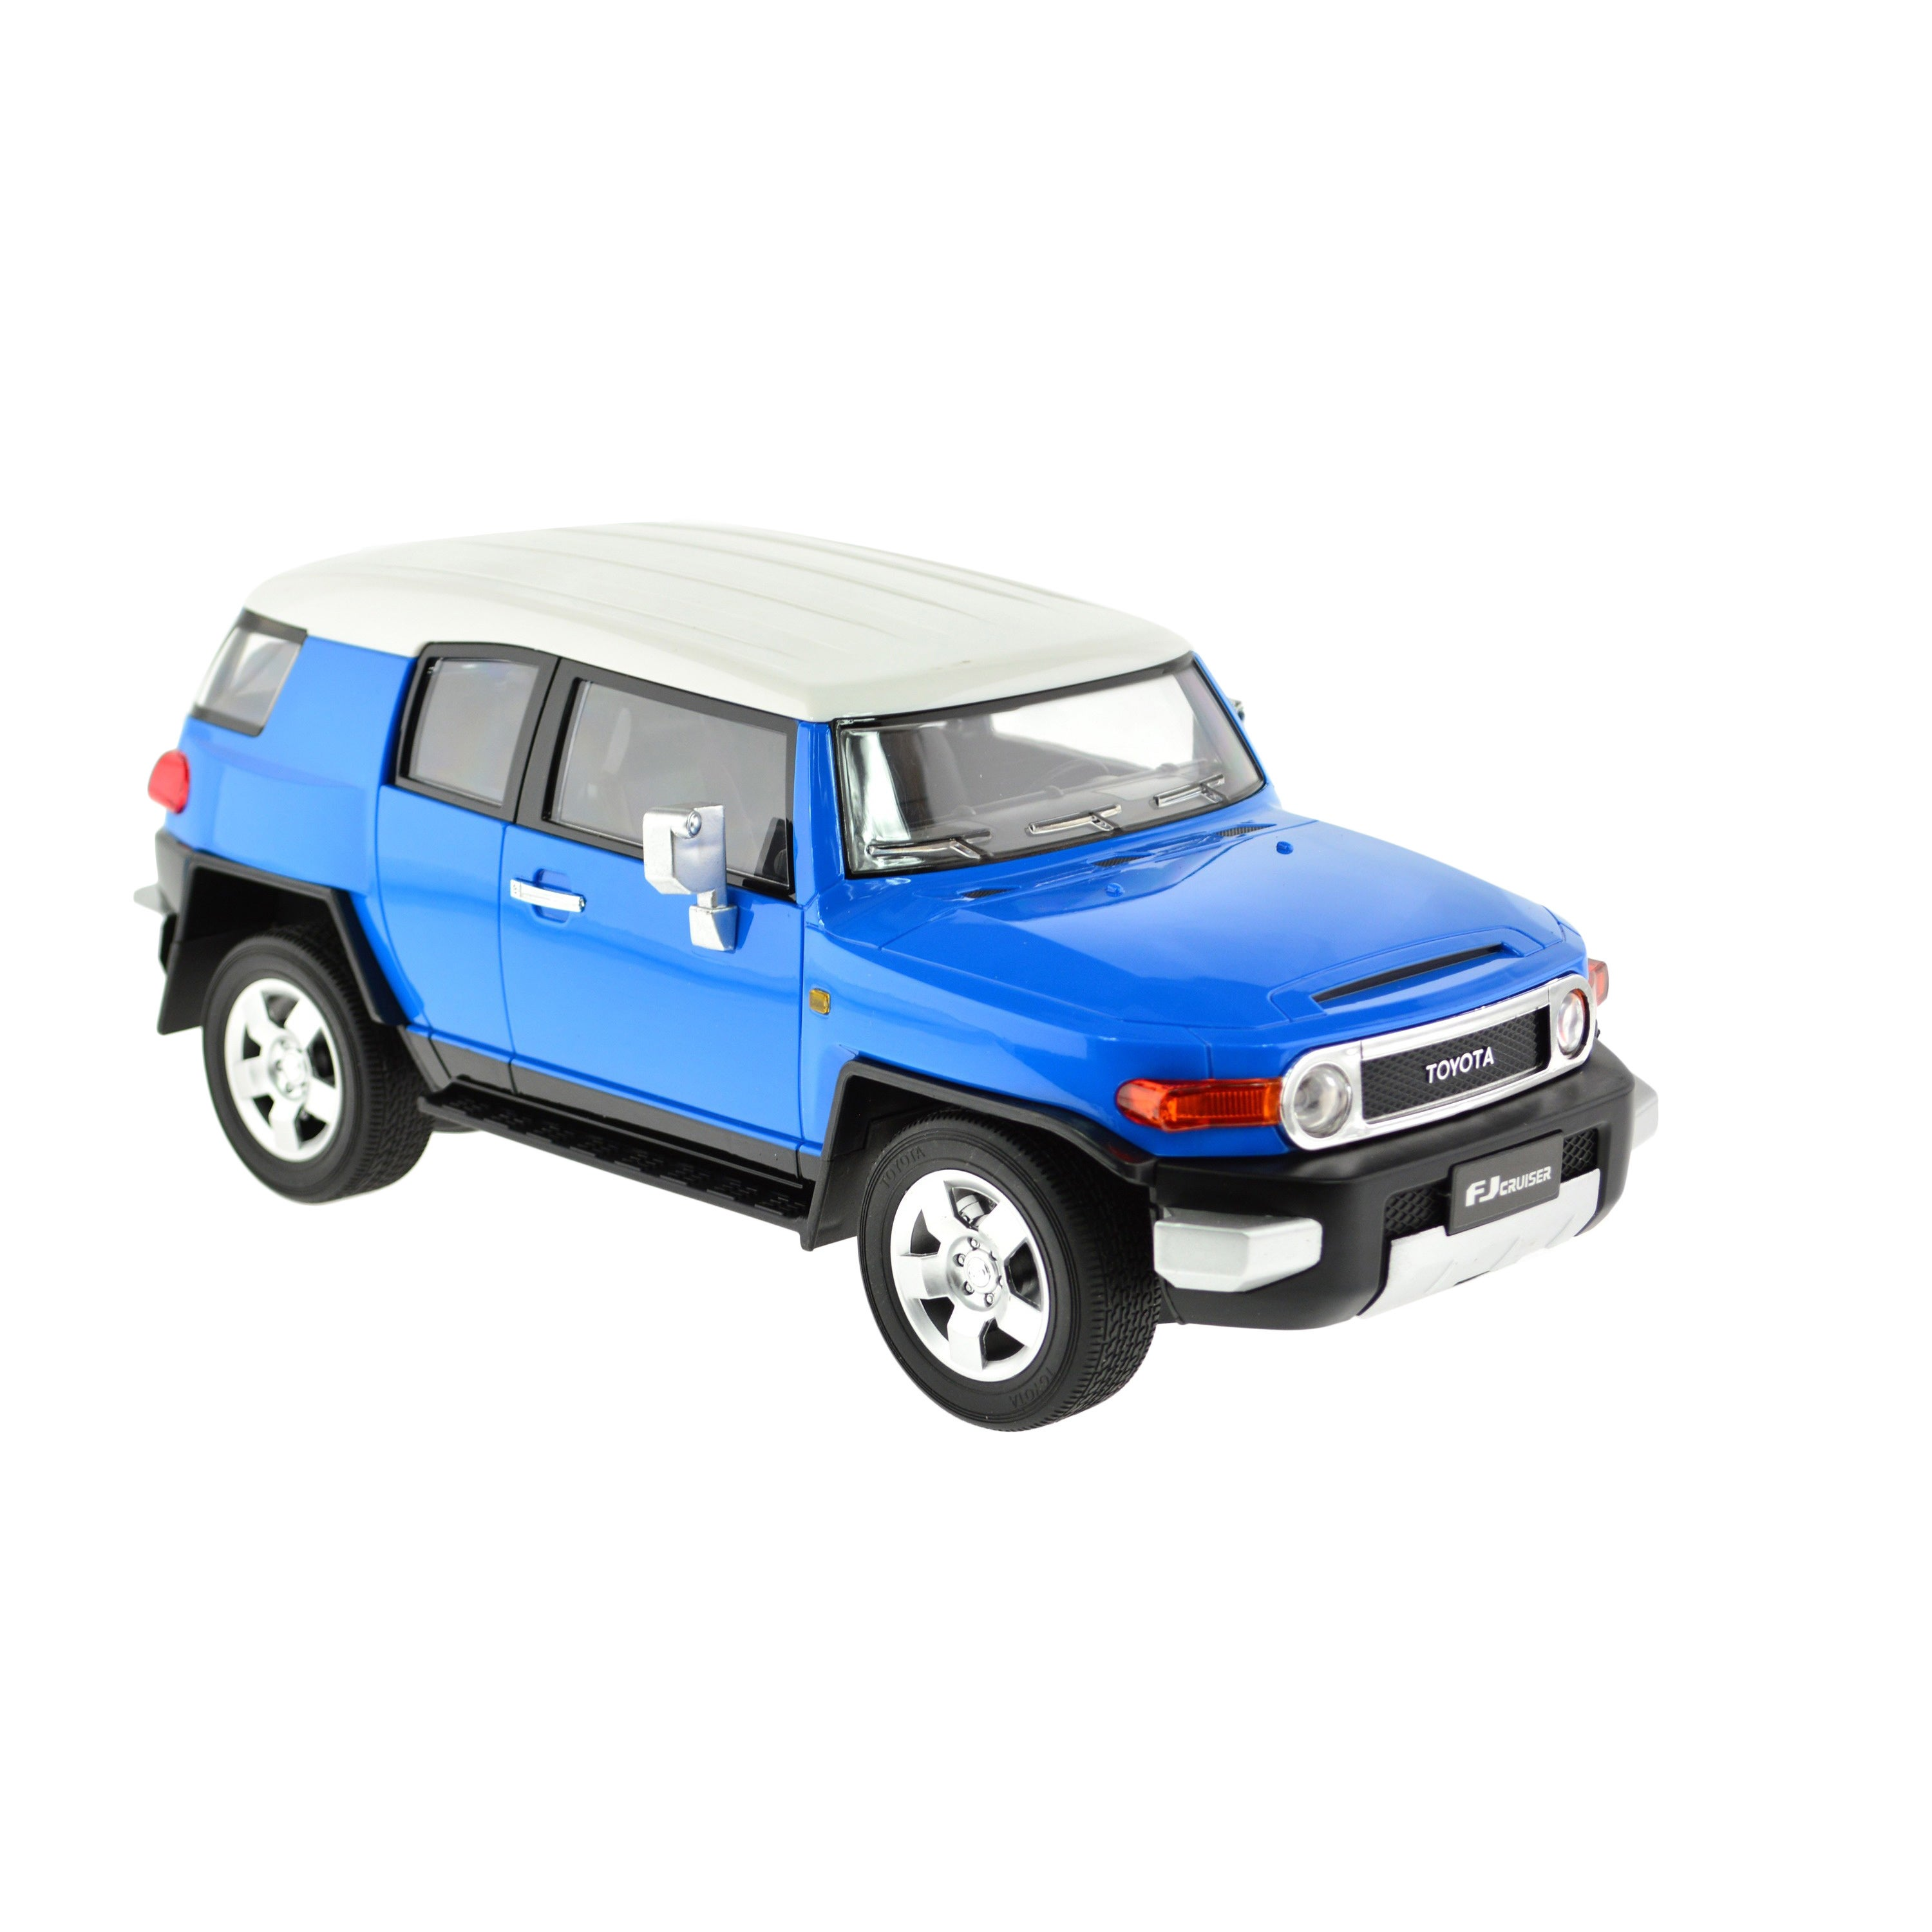 Cis 928 1 12 Toyota Fj Cruiser Licensed Car Free Shipping Today